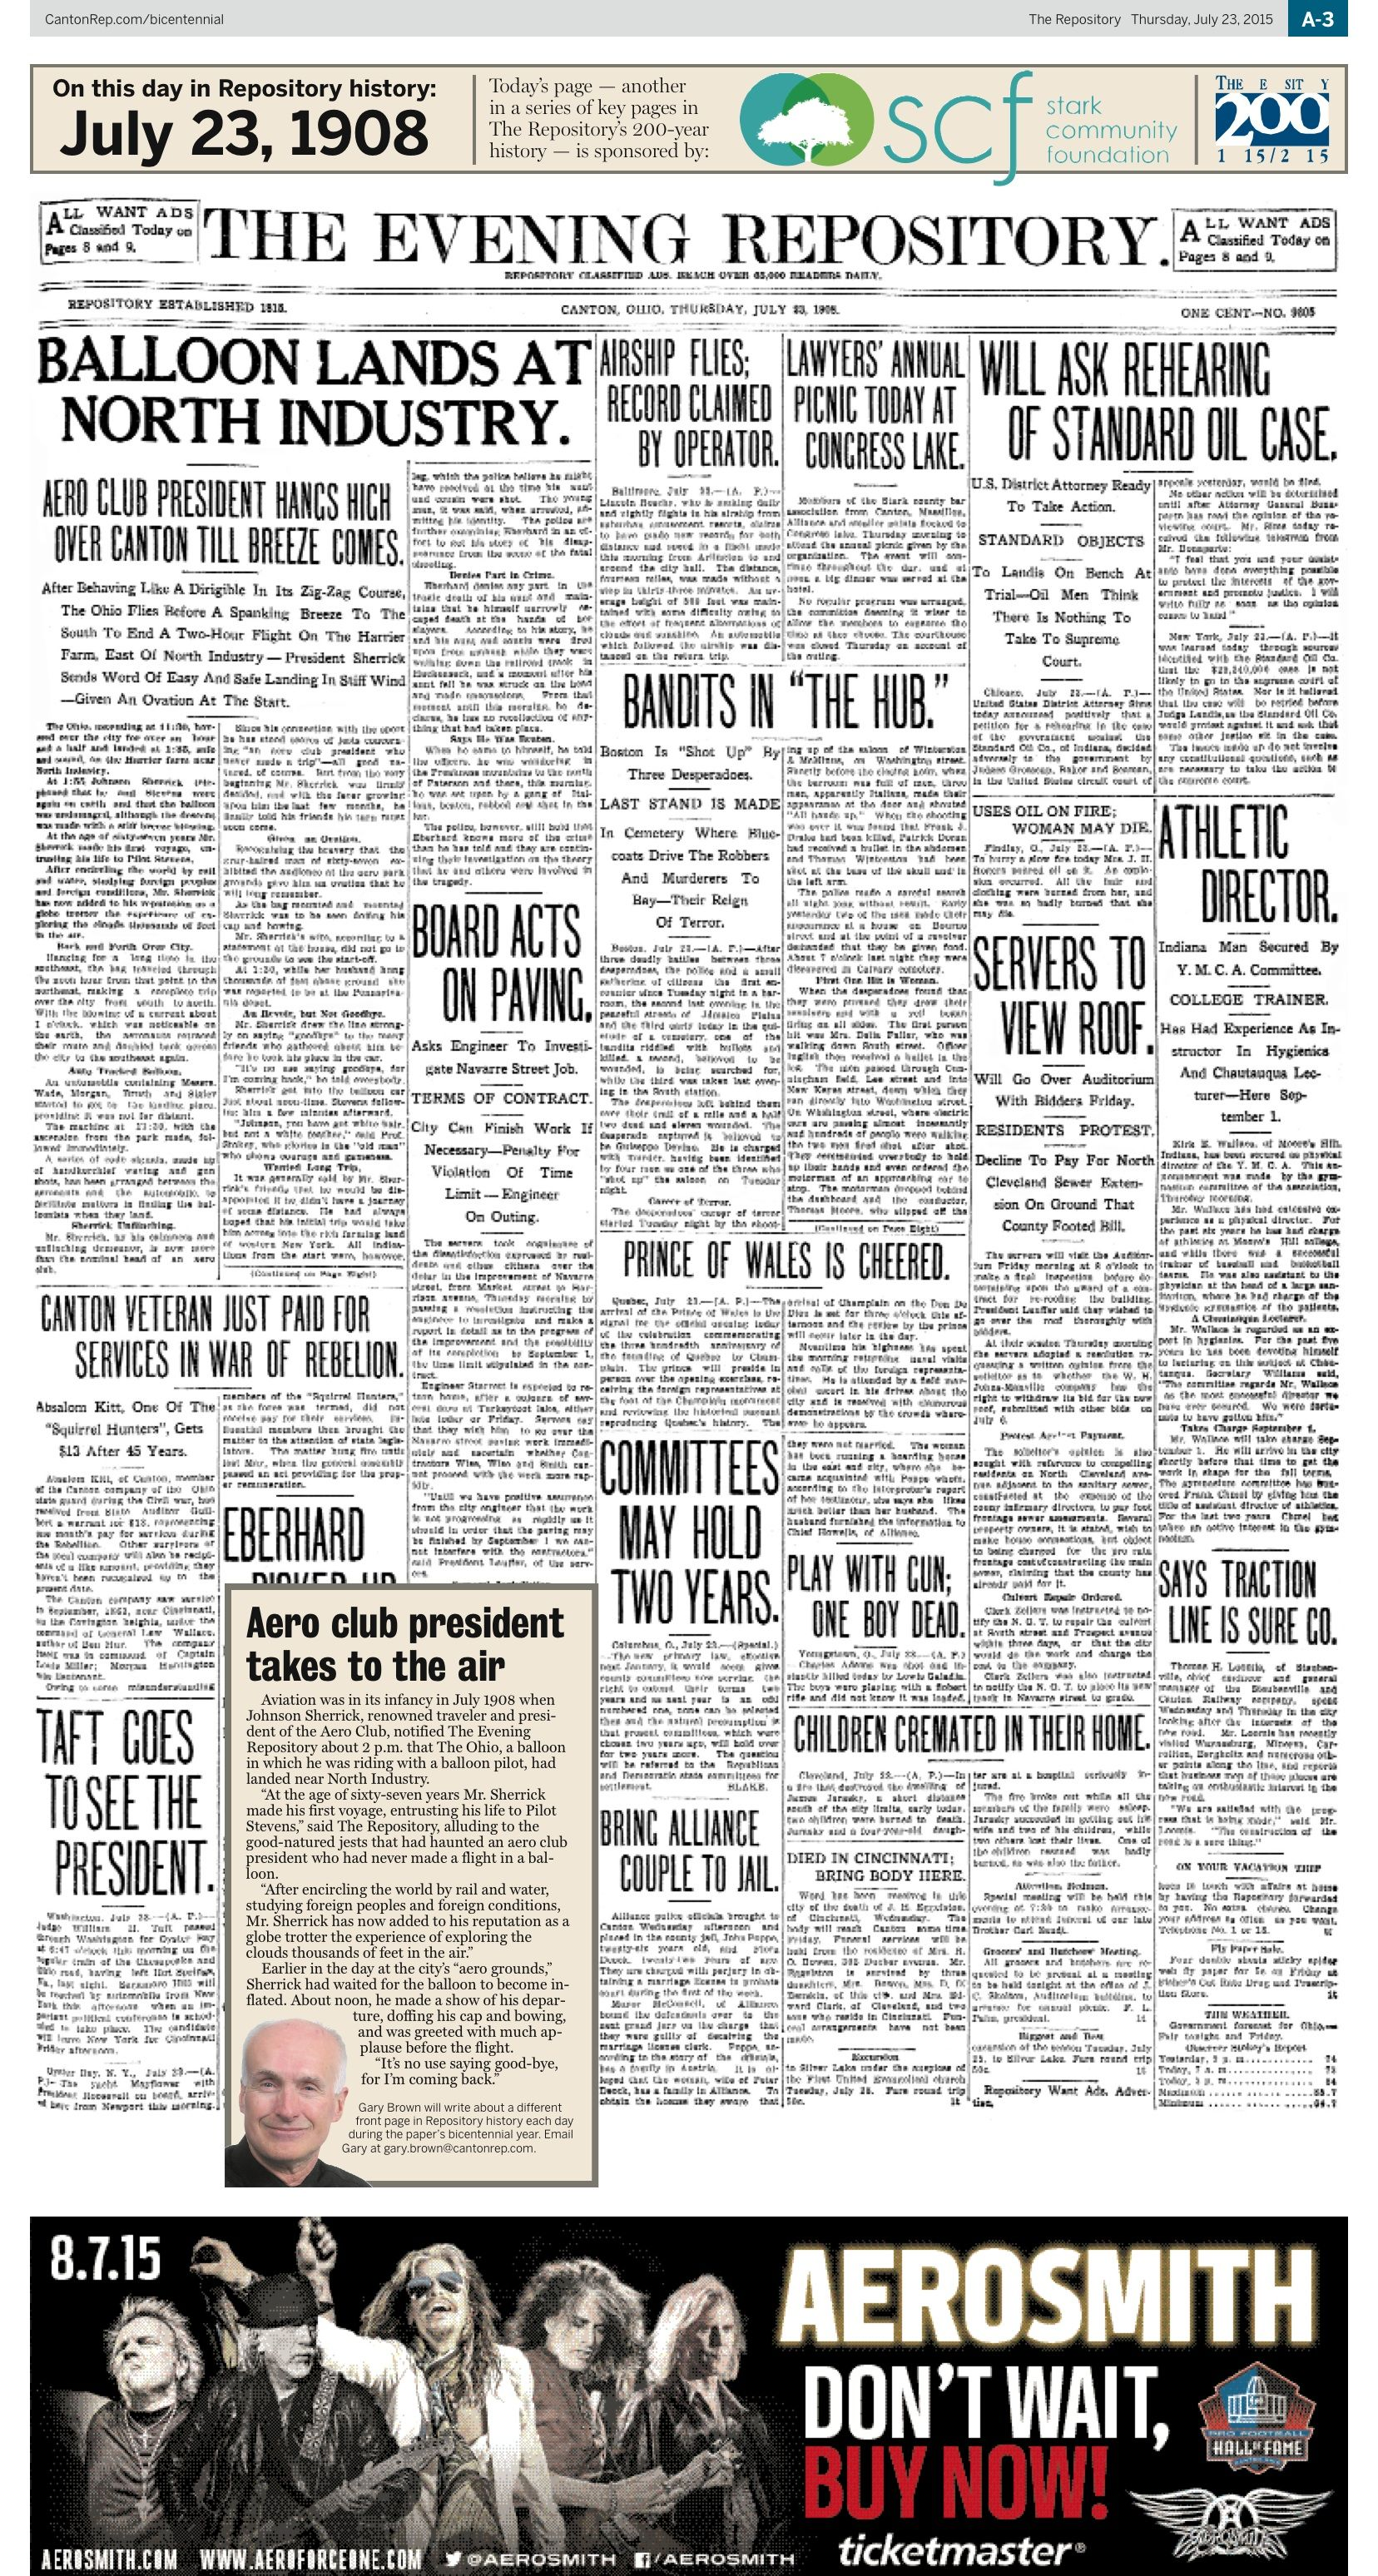 A balloon landing in North Industry was front-page news in The Repository on July 23, 1908.